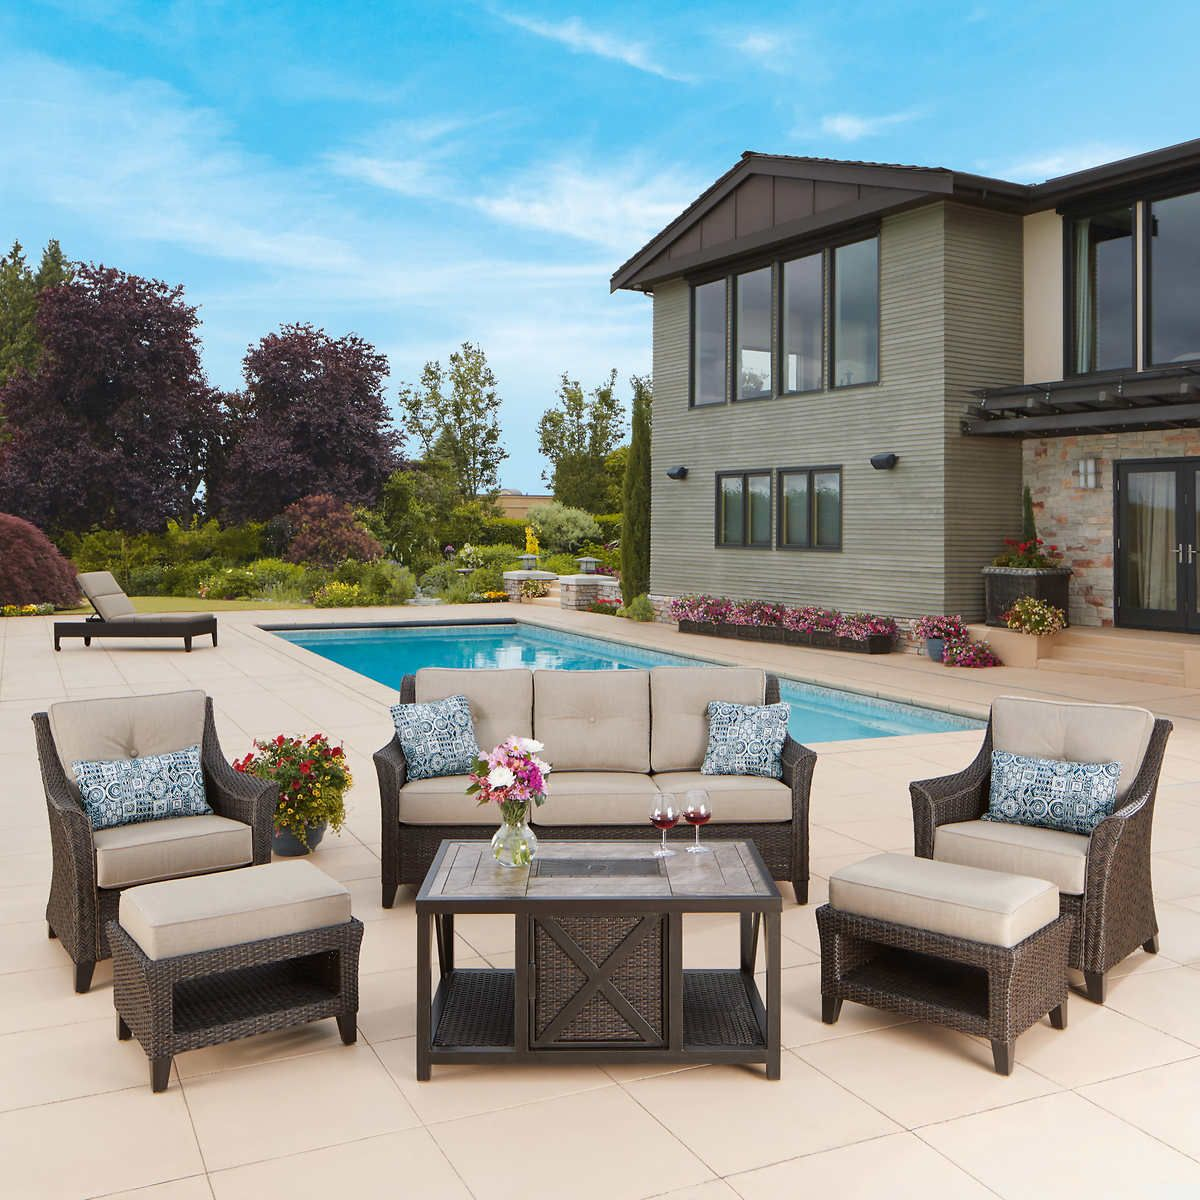 South Dakota 6piece Deep Seating Set Costco patio